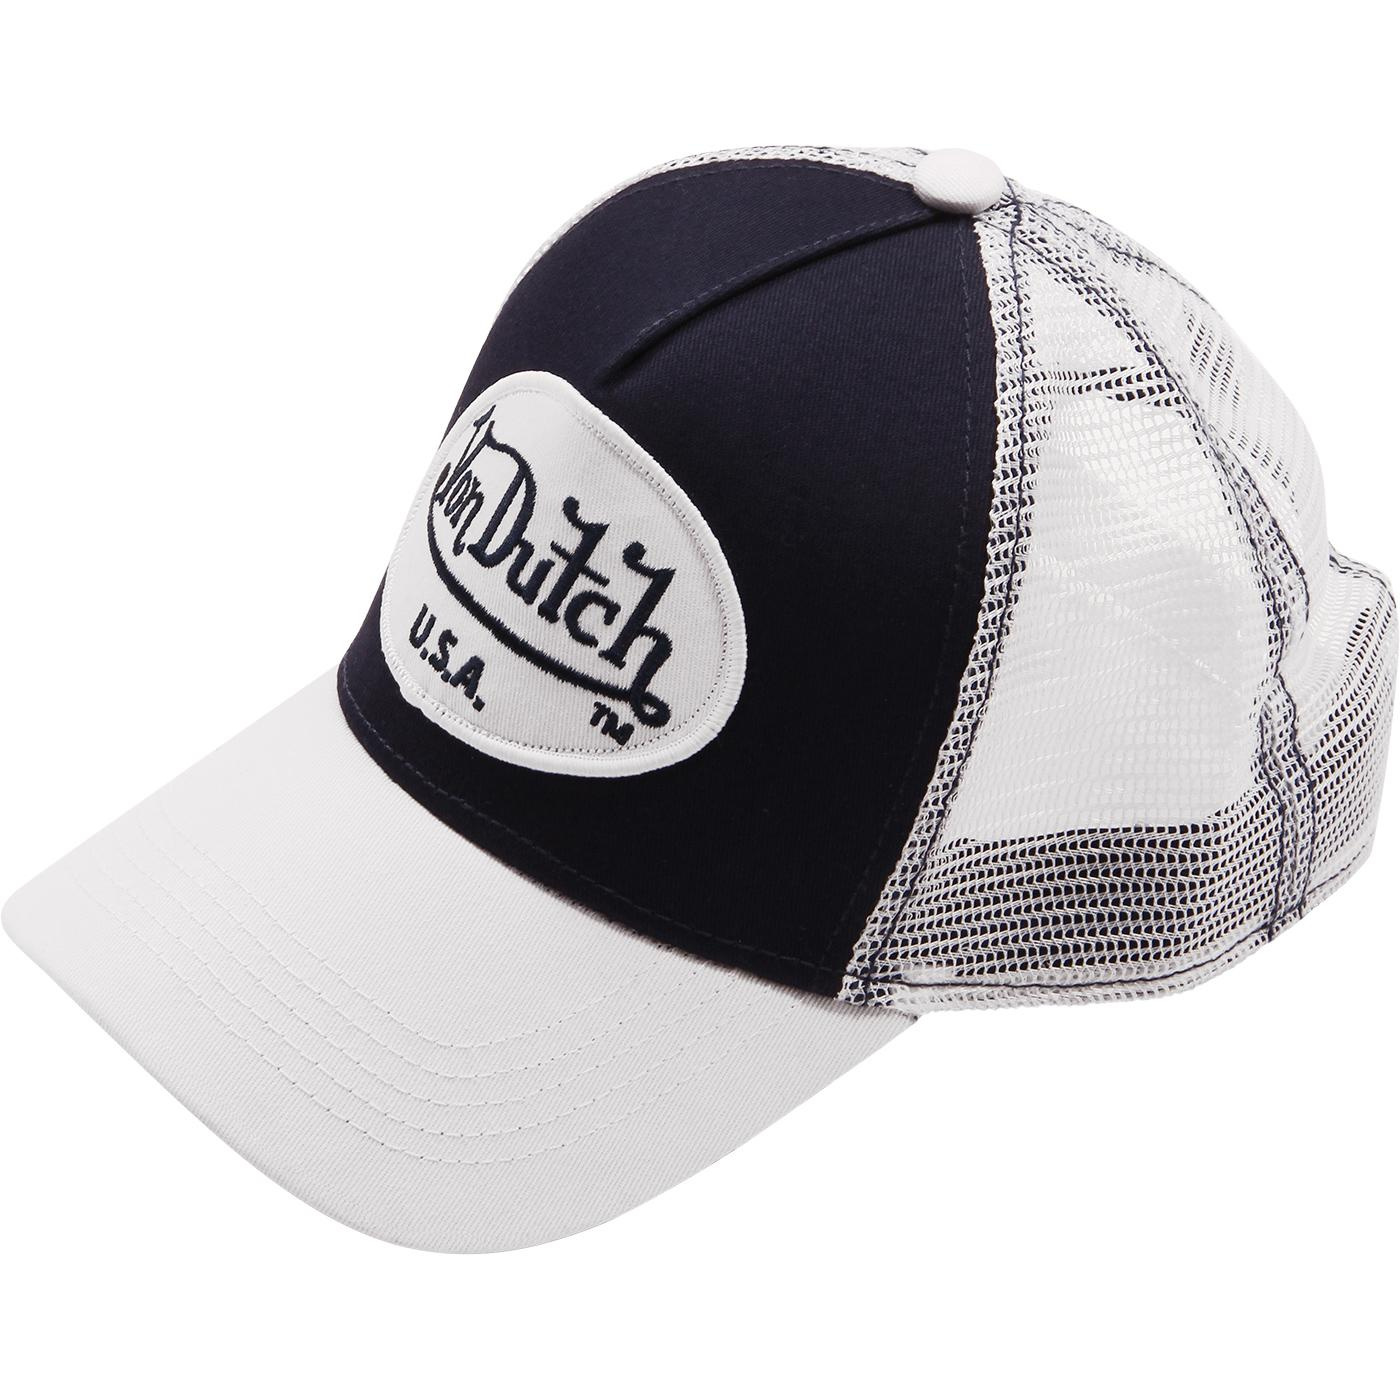 VON DUTCH USA Patch Retro Trucker Cap NAVY/WHITE